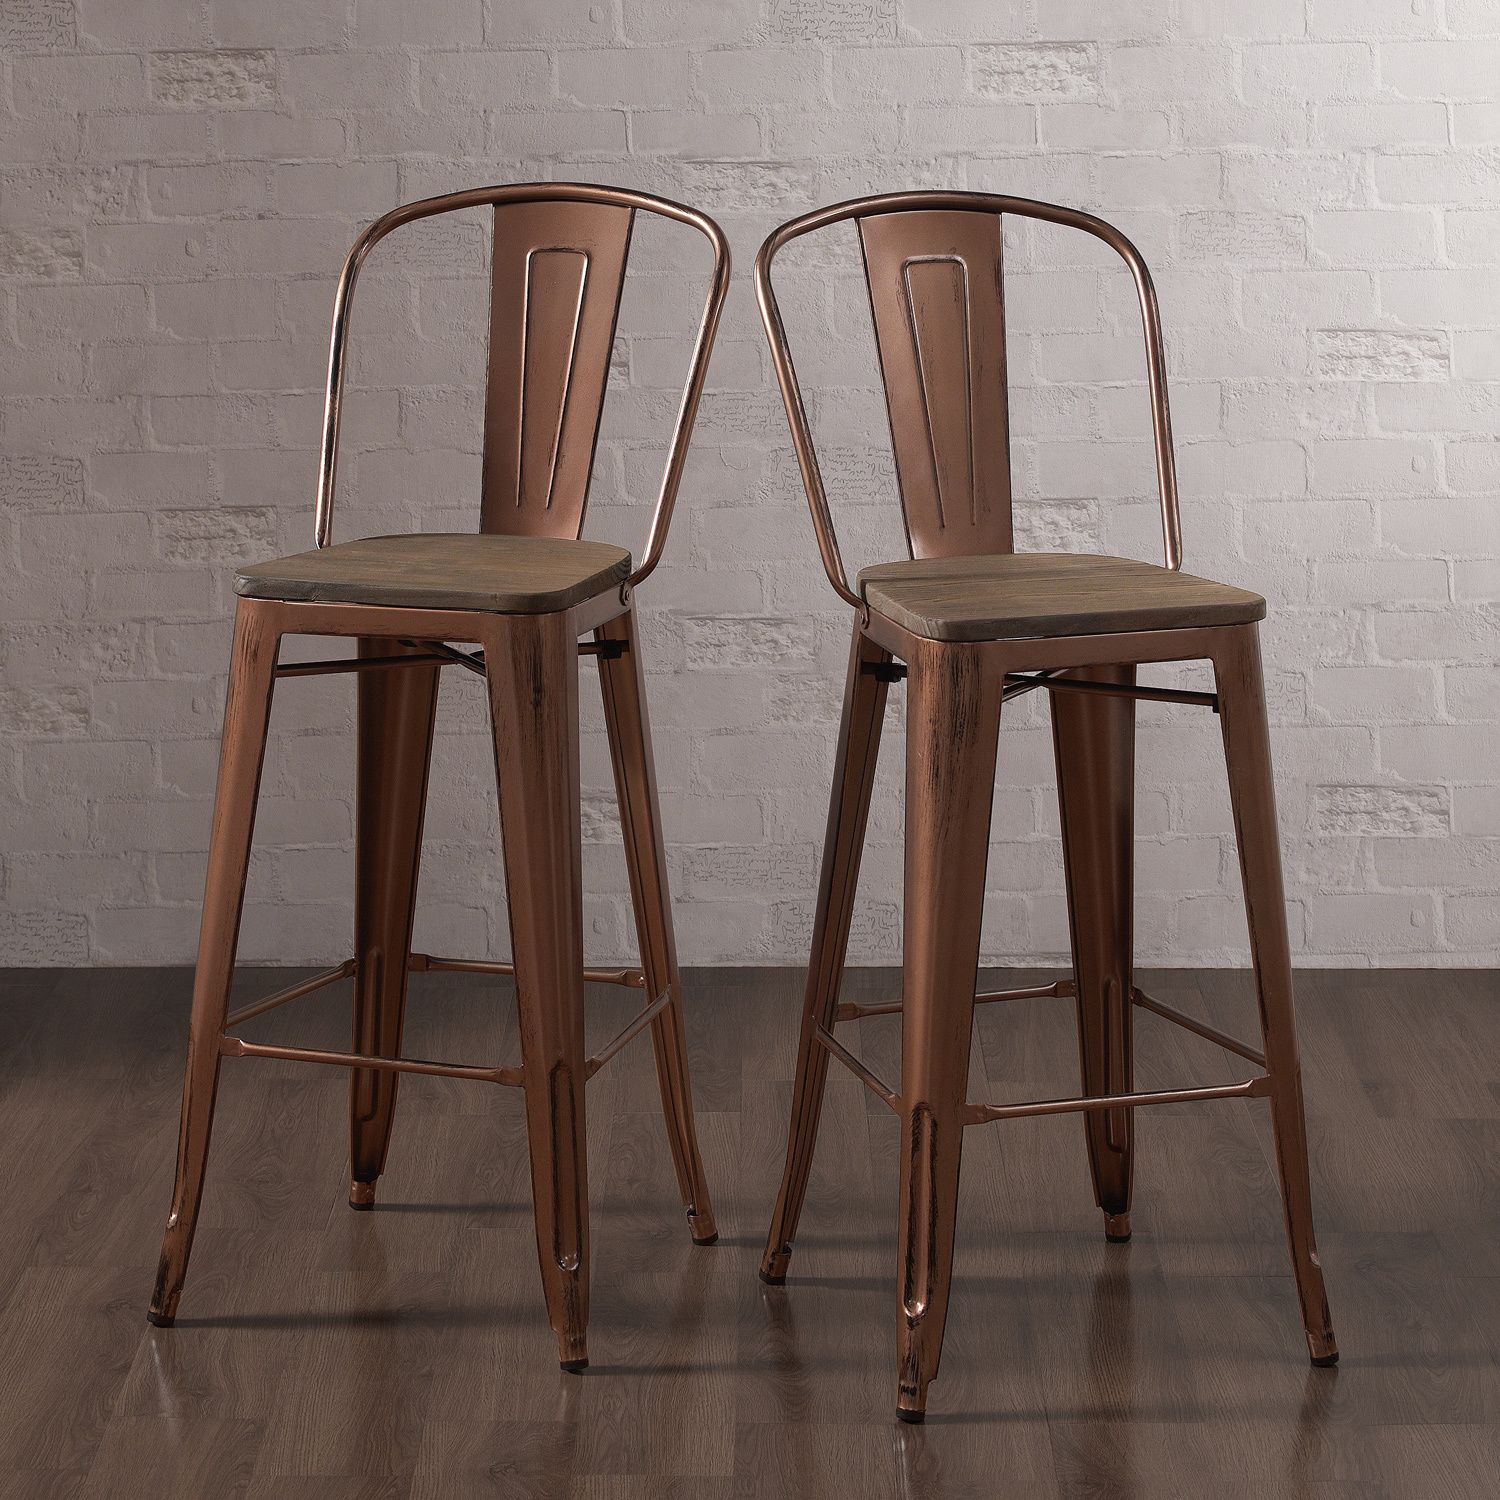 New Copper Metal Wood Counter Stool Kitchen Dining Bar: Perfect For Your Kitchen Island Or Bar Area, The Classic